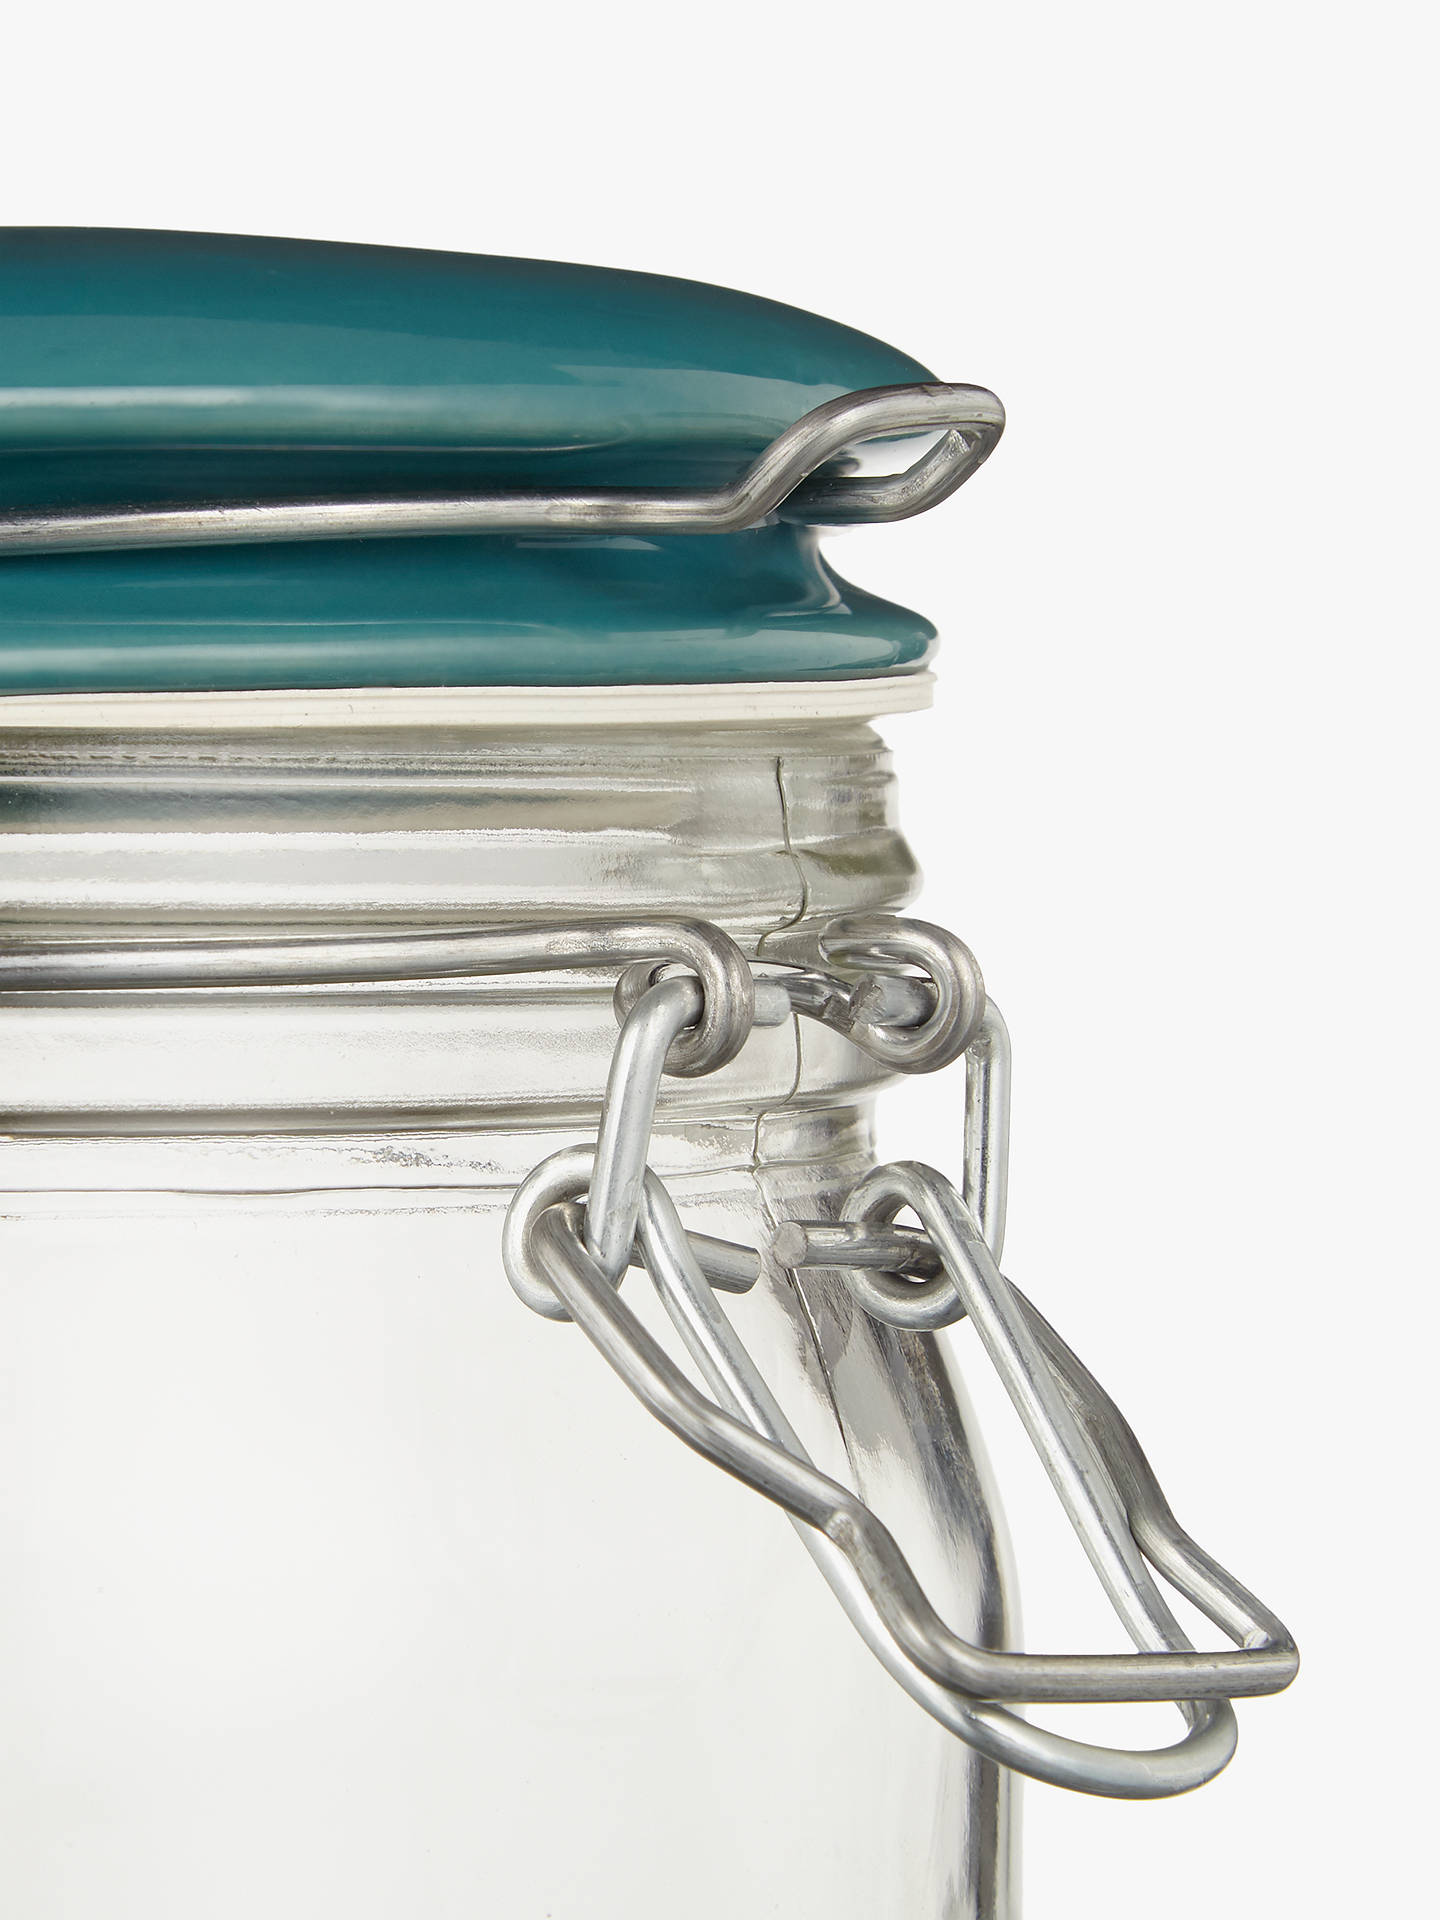 BuyLEON Small Clip Top Glass Preserving Jar, Teal Online at johnlewis.com